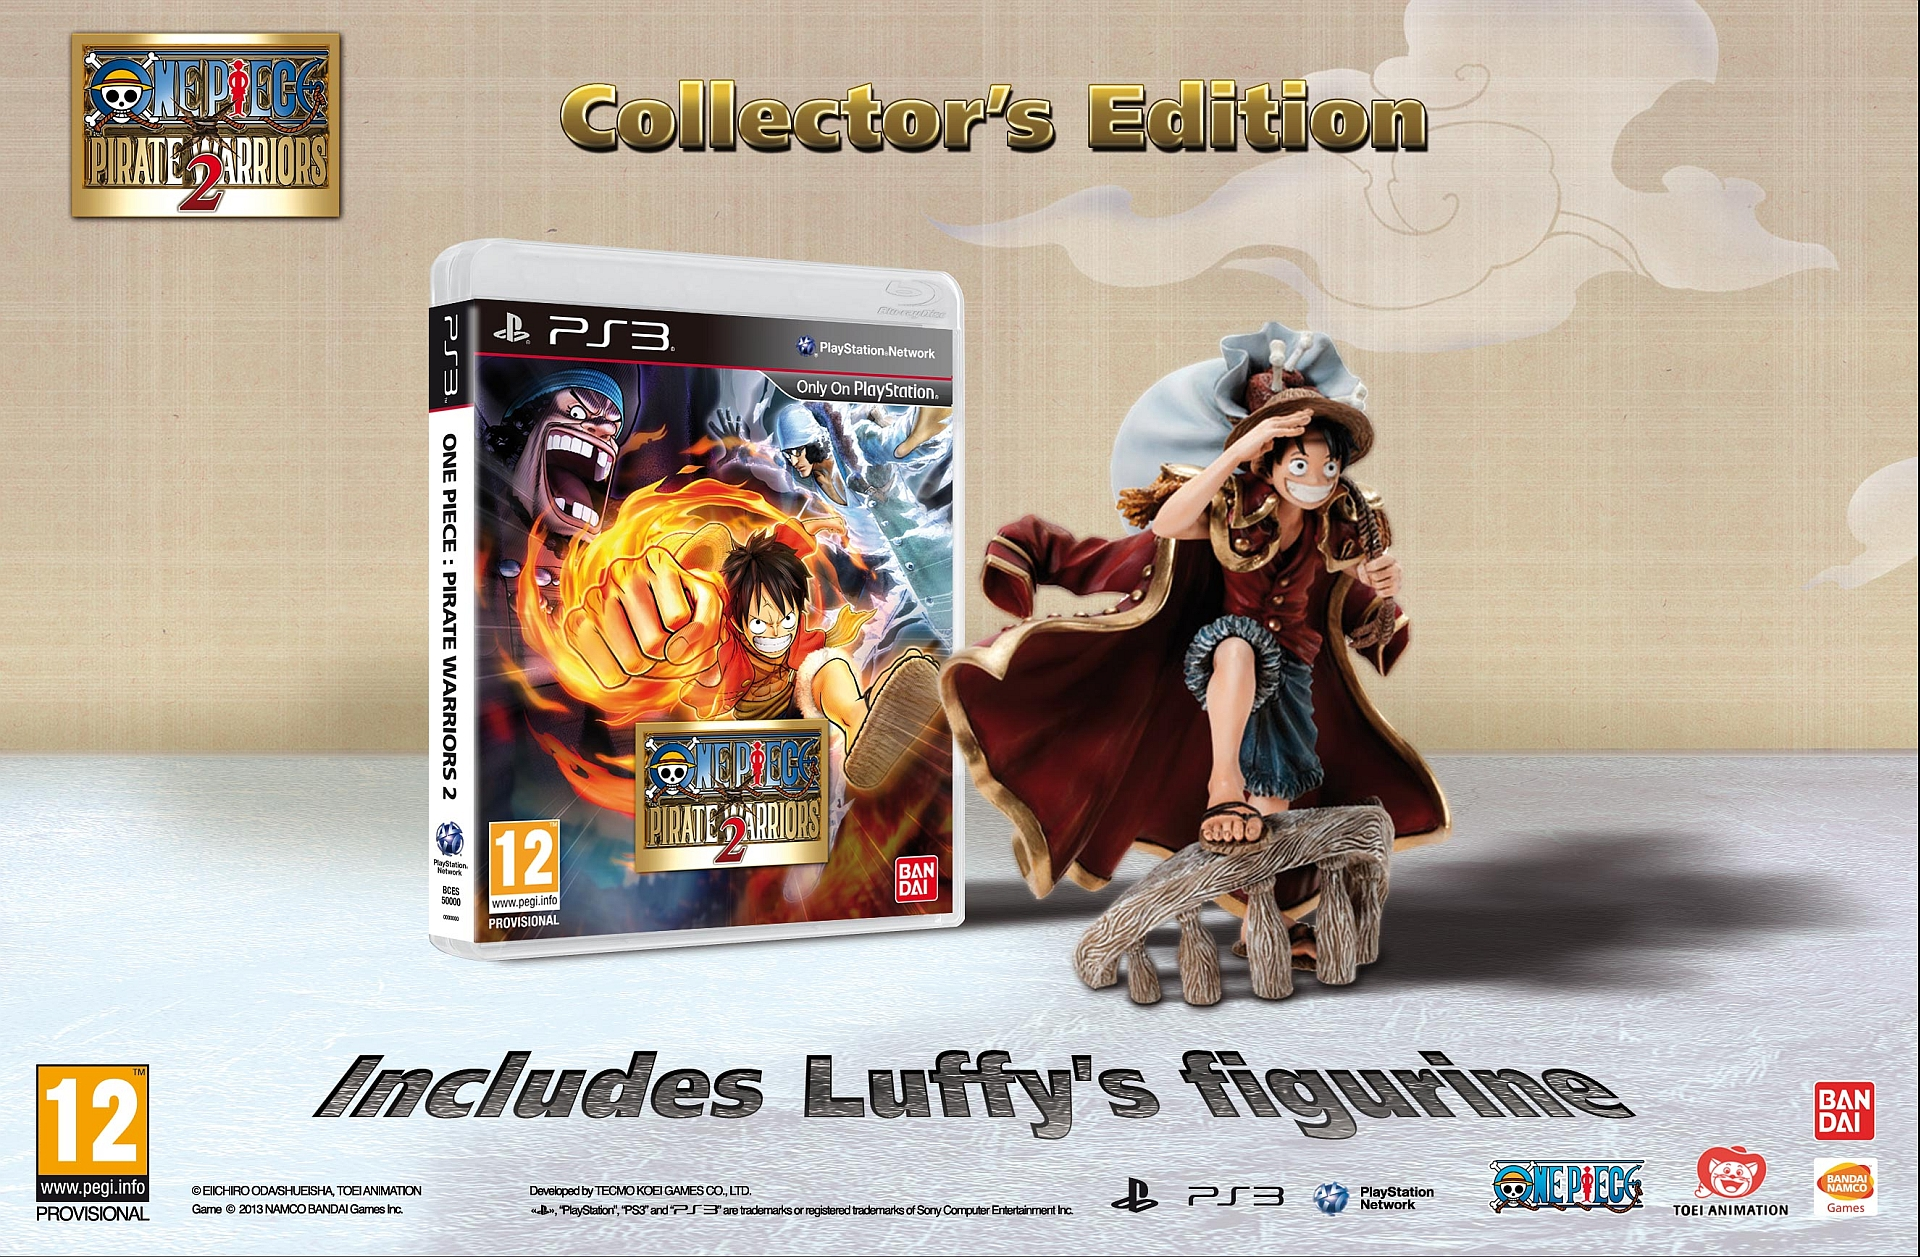 One Piece Pirate Warriors 2 Collectors Edition Europe pic